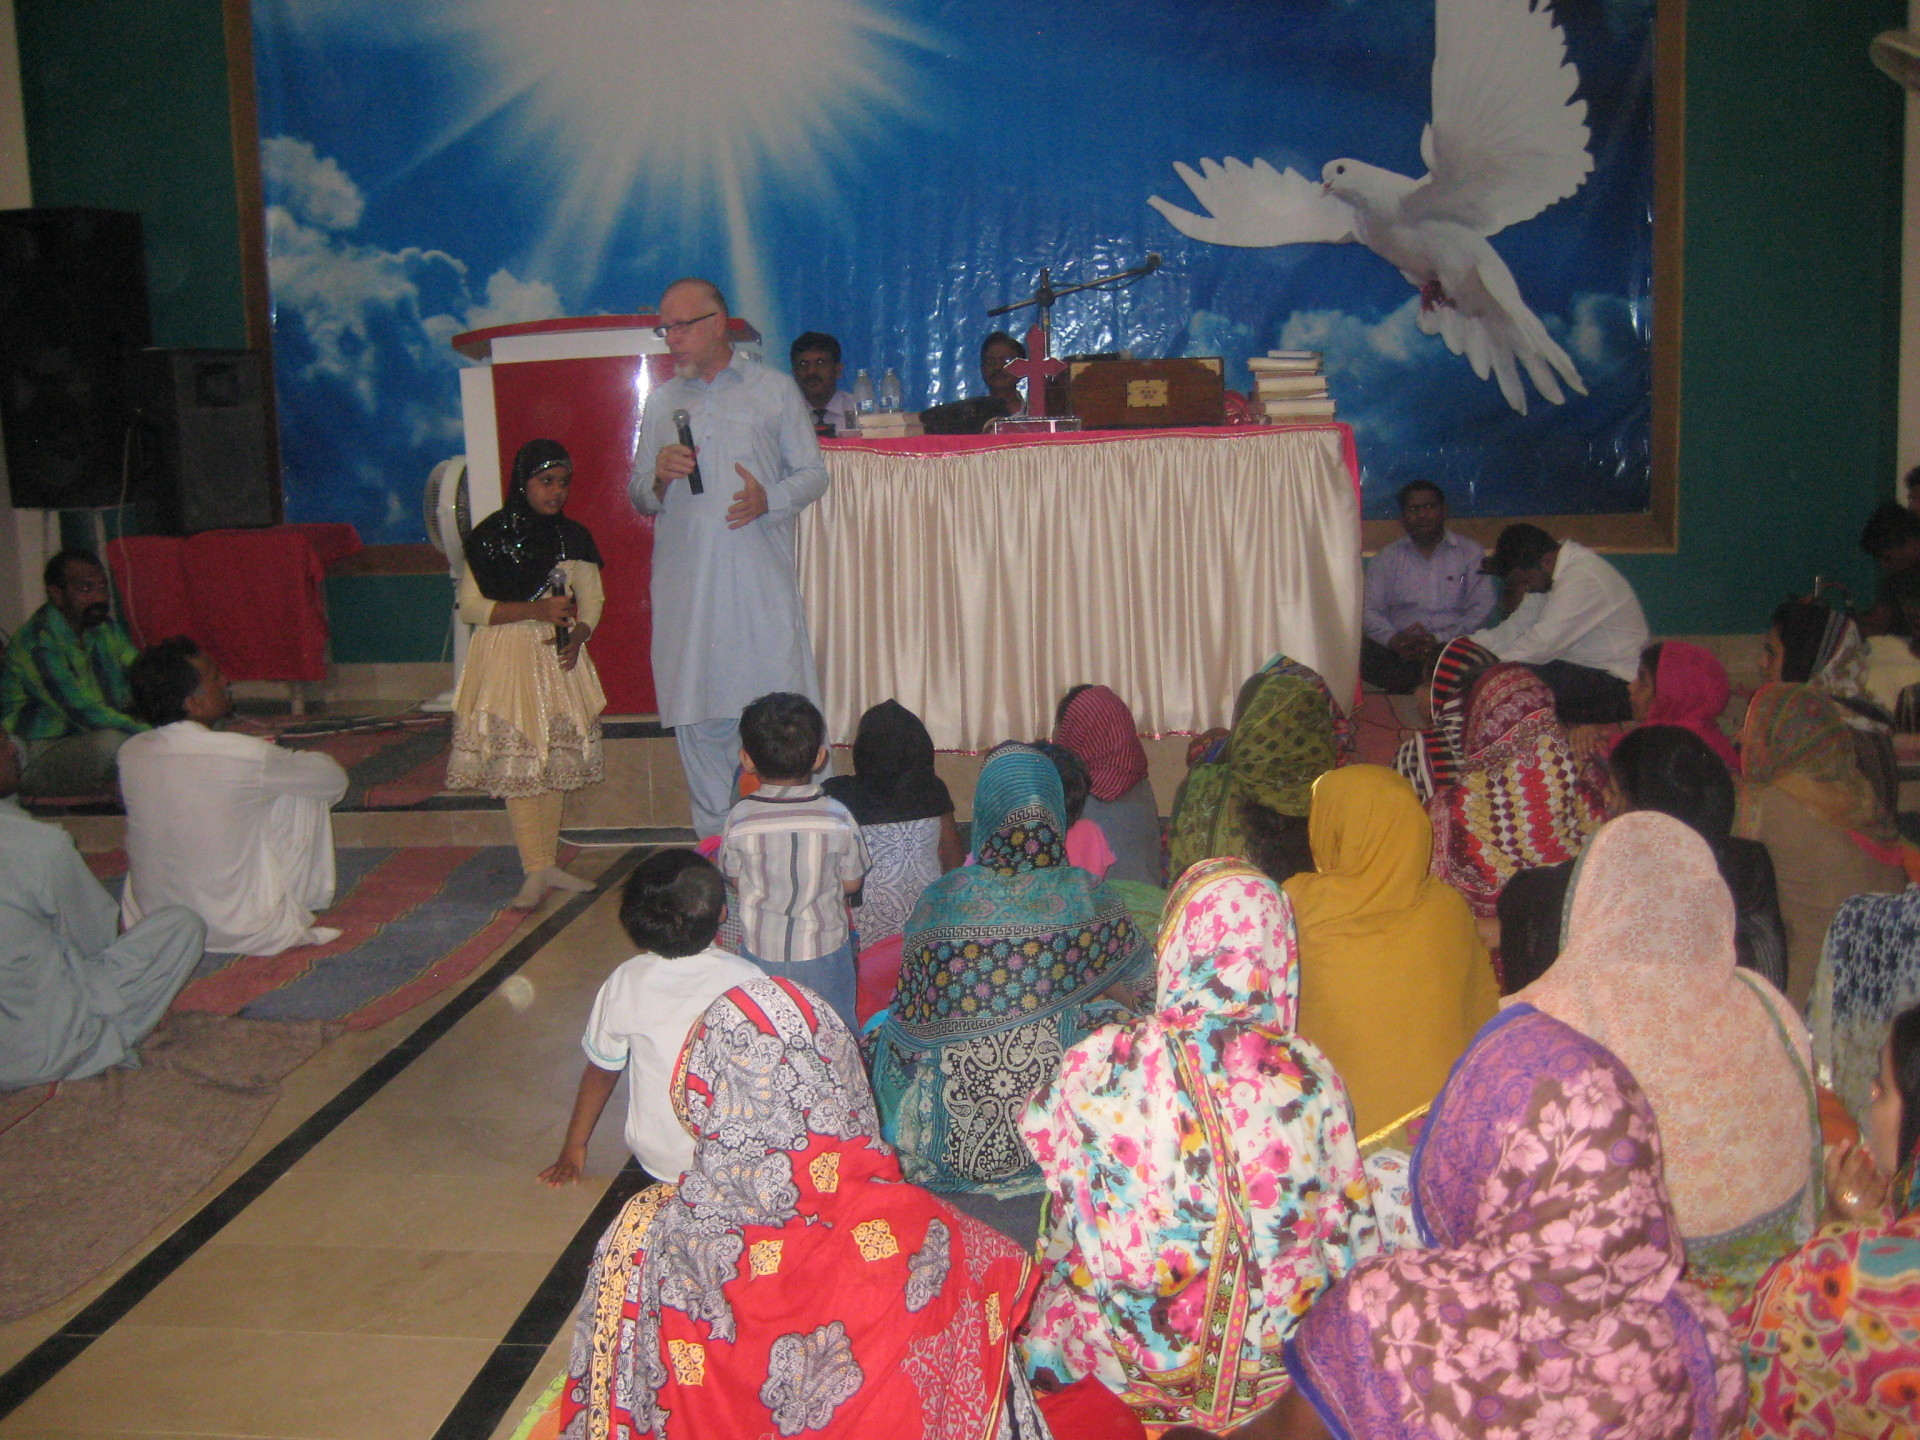 Pentecostal Church - Karachi, Pakistan